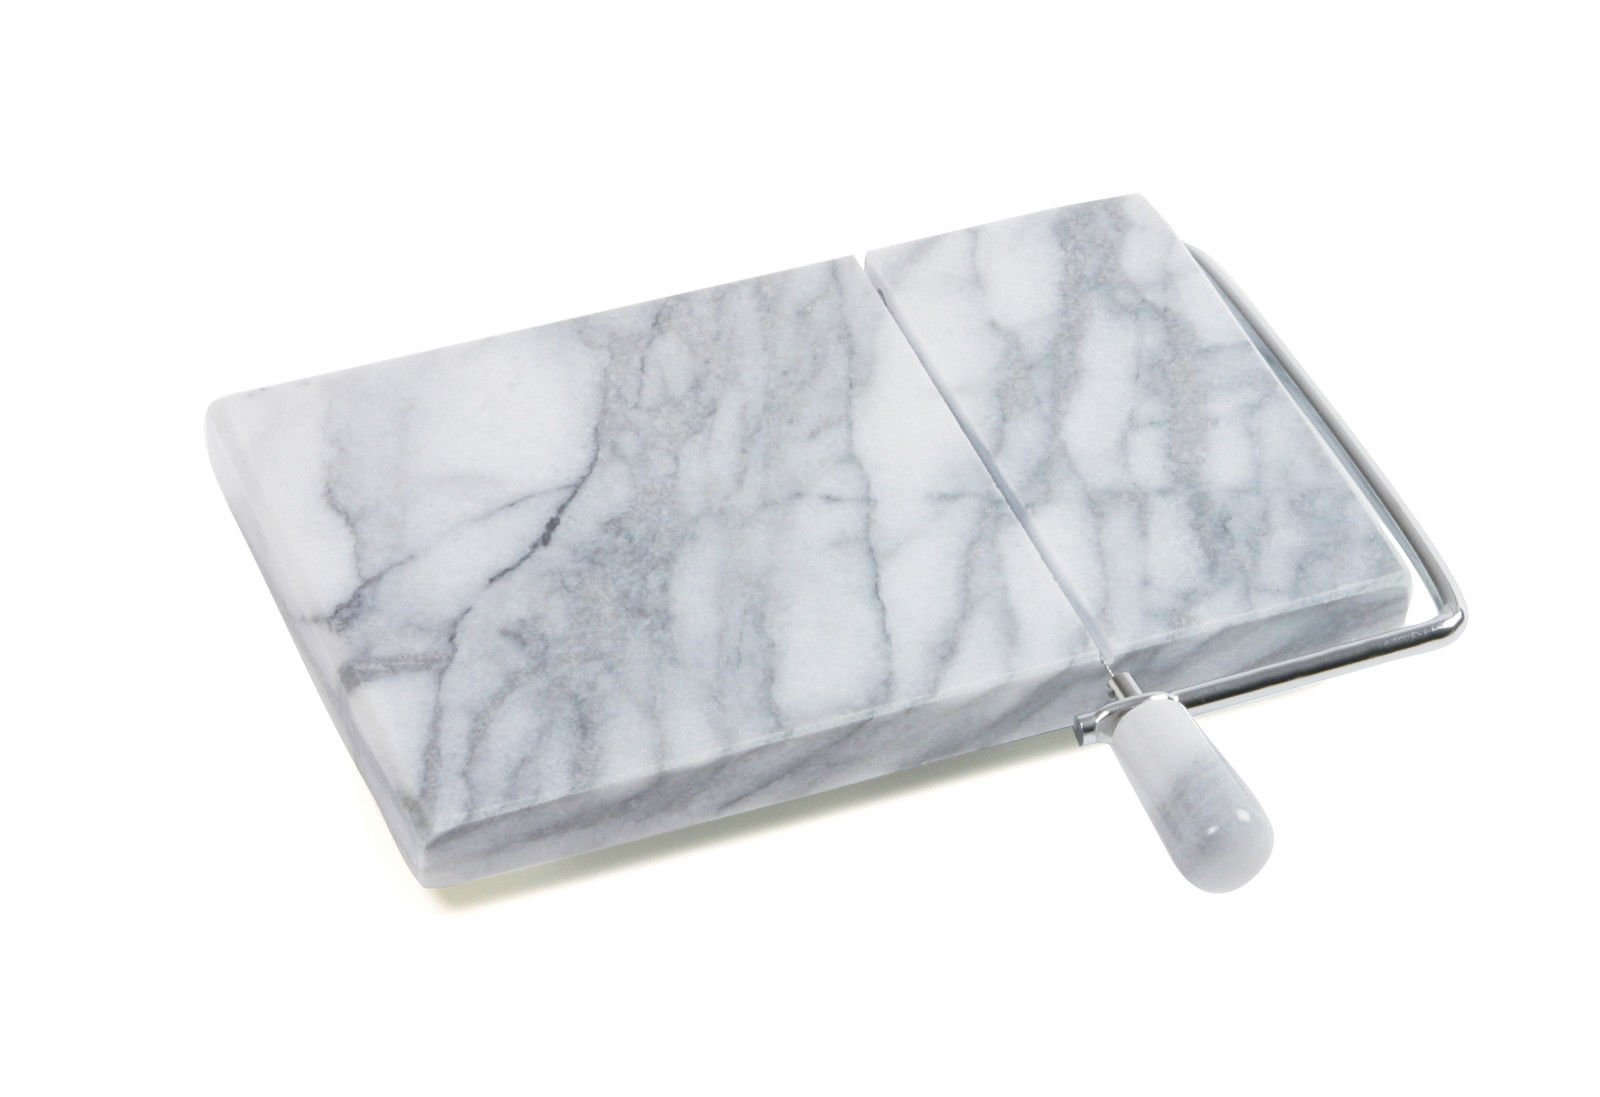 349 Marble Board with Cheese Slicer and Extra Wires